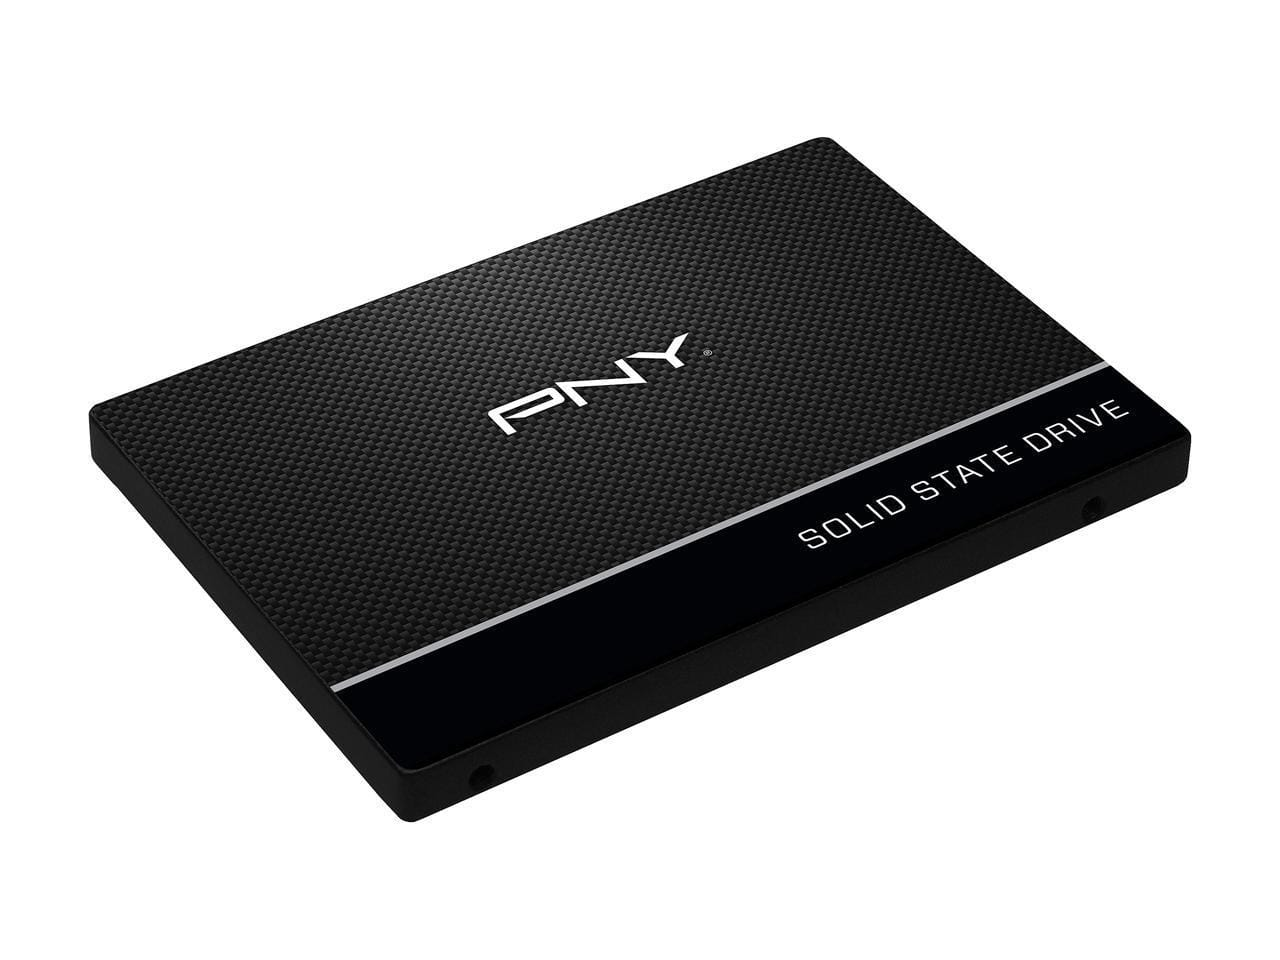 """120 GB PNY CS900 2.5"""" SATA III 3D NAND Internal Solid State Drive for $34.99 AC + S&H @ Newegg"""